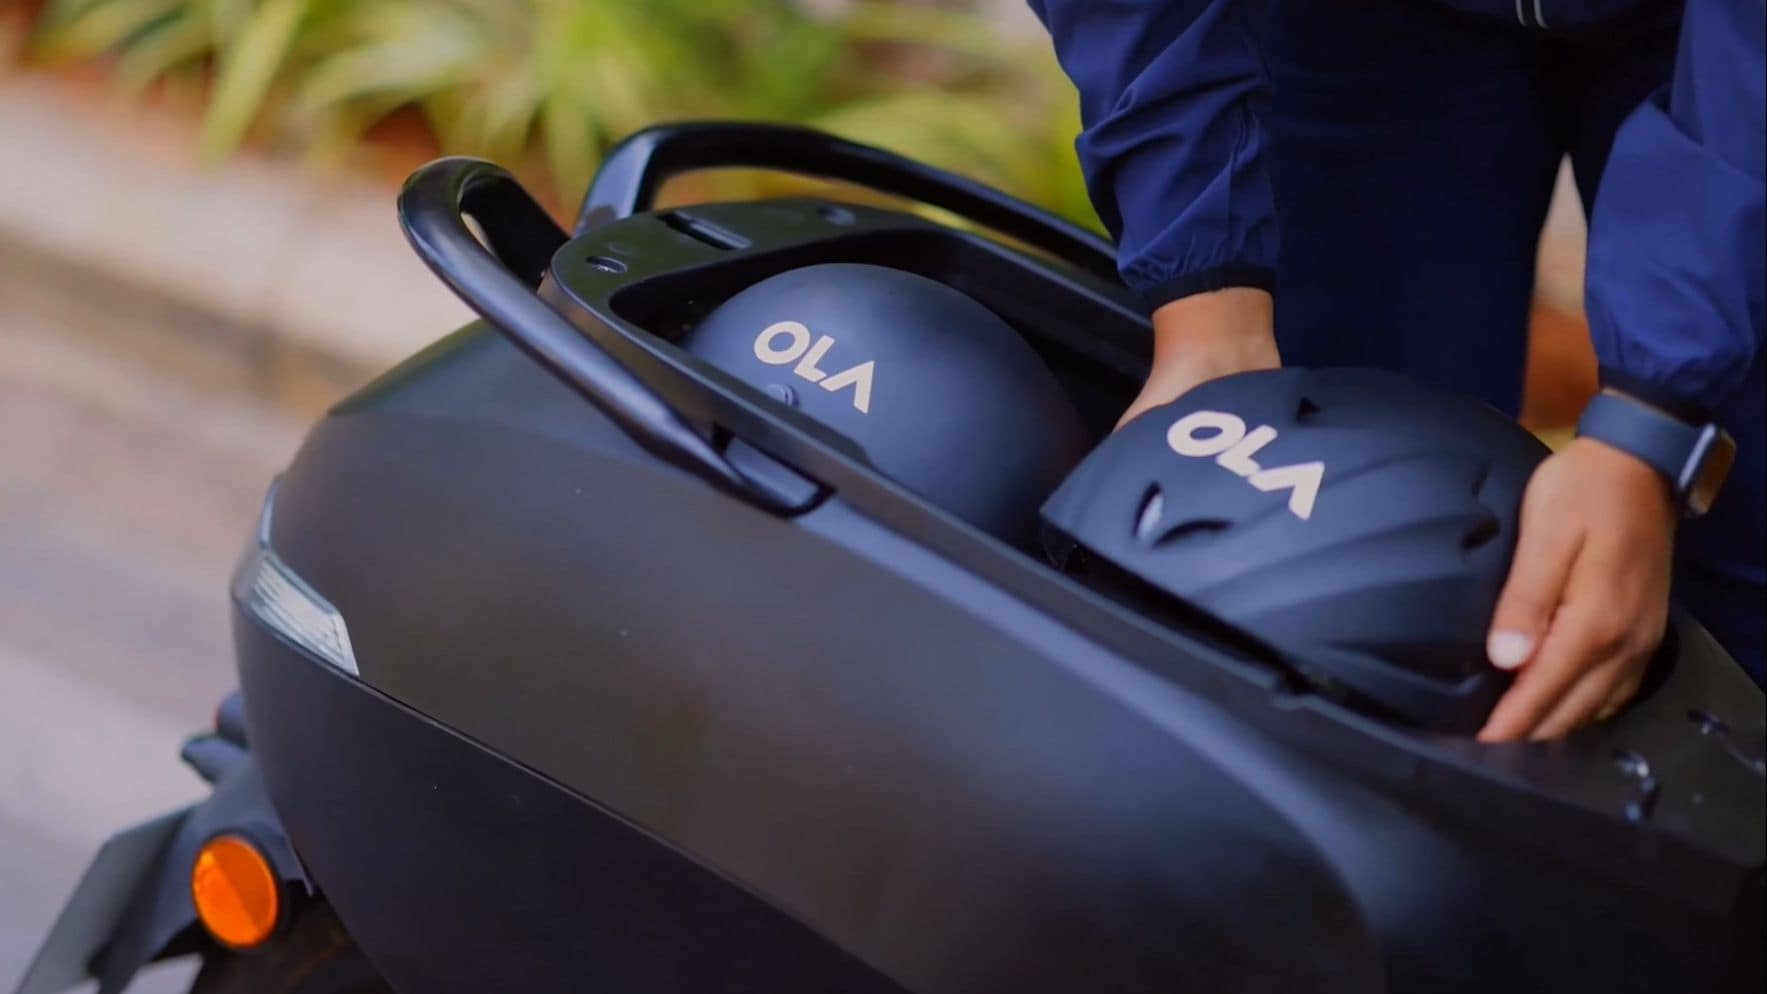 The Ola electric scooter can hold two half-face helmets in the storage bay under the seat.Image: Ora Electric